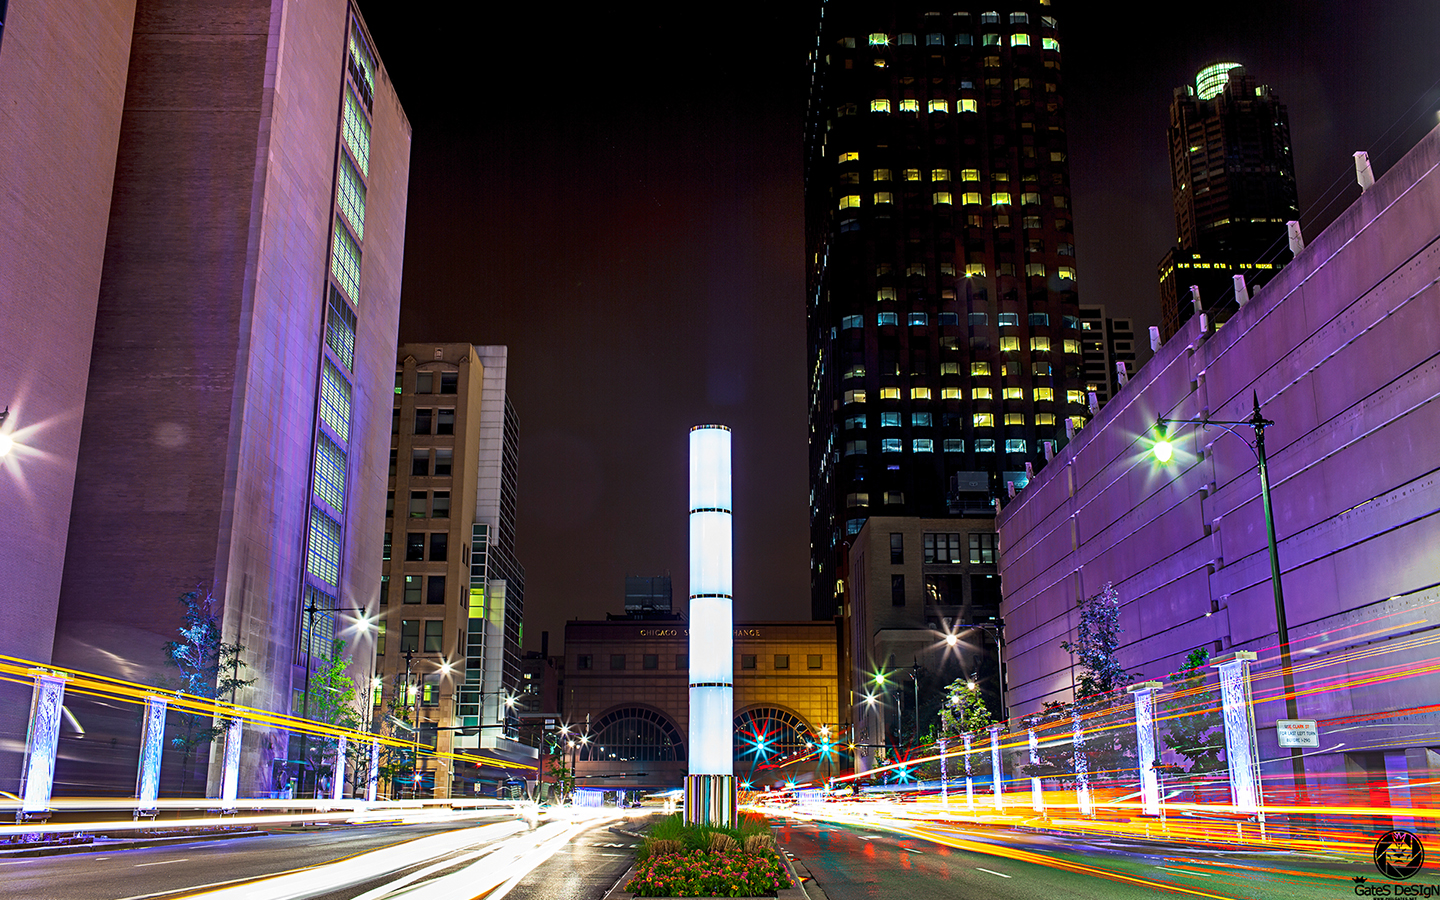 Phil Gates still of Chicago timelapse of Congress PKWY circa 2014